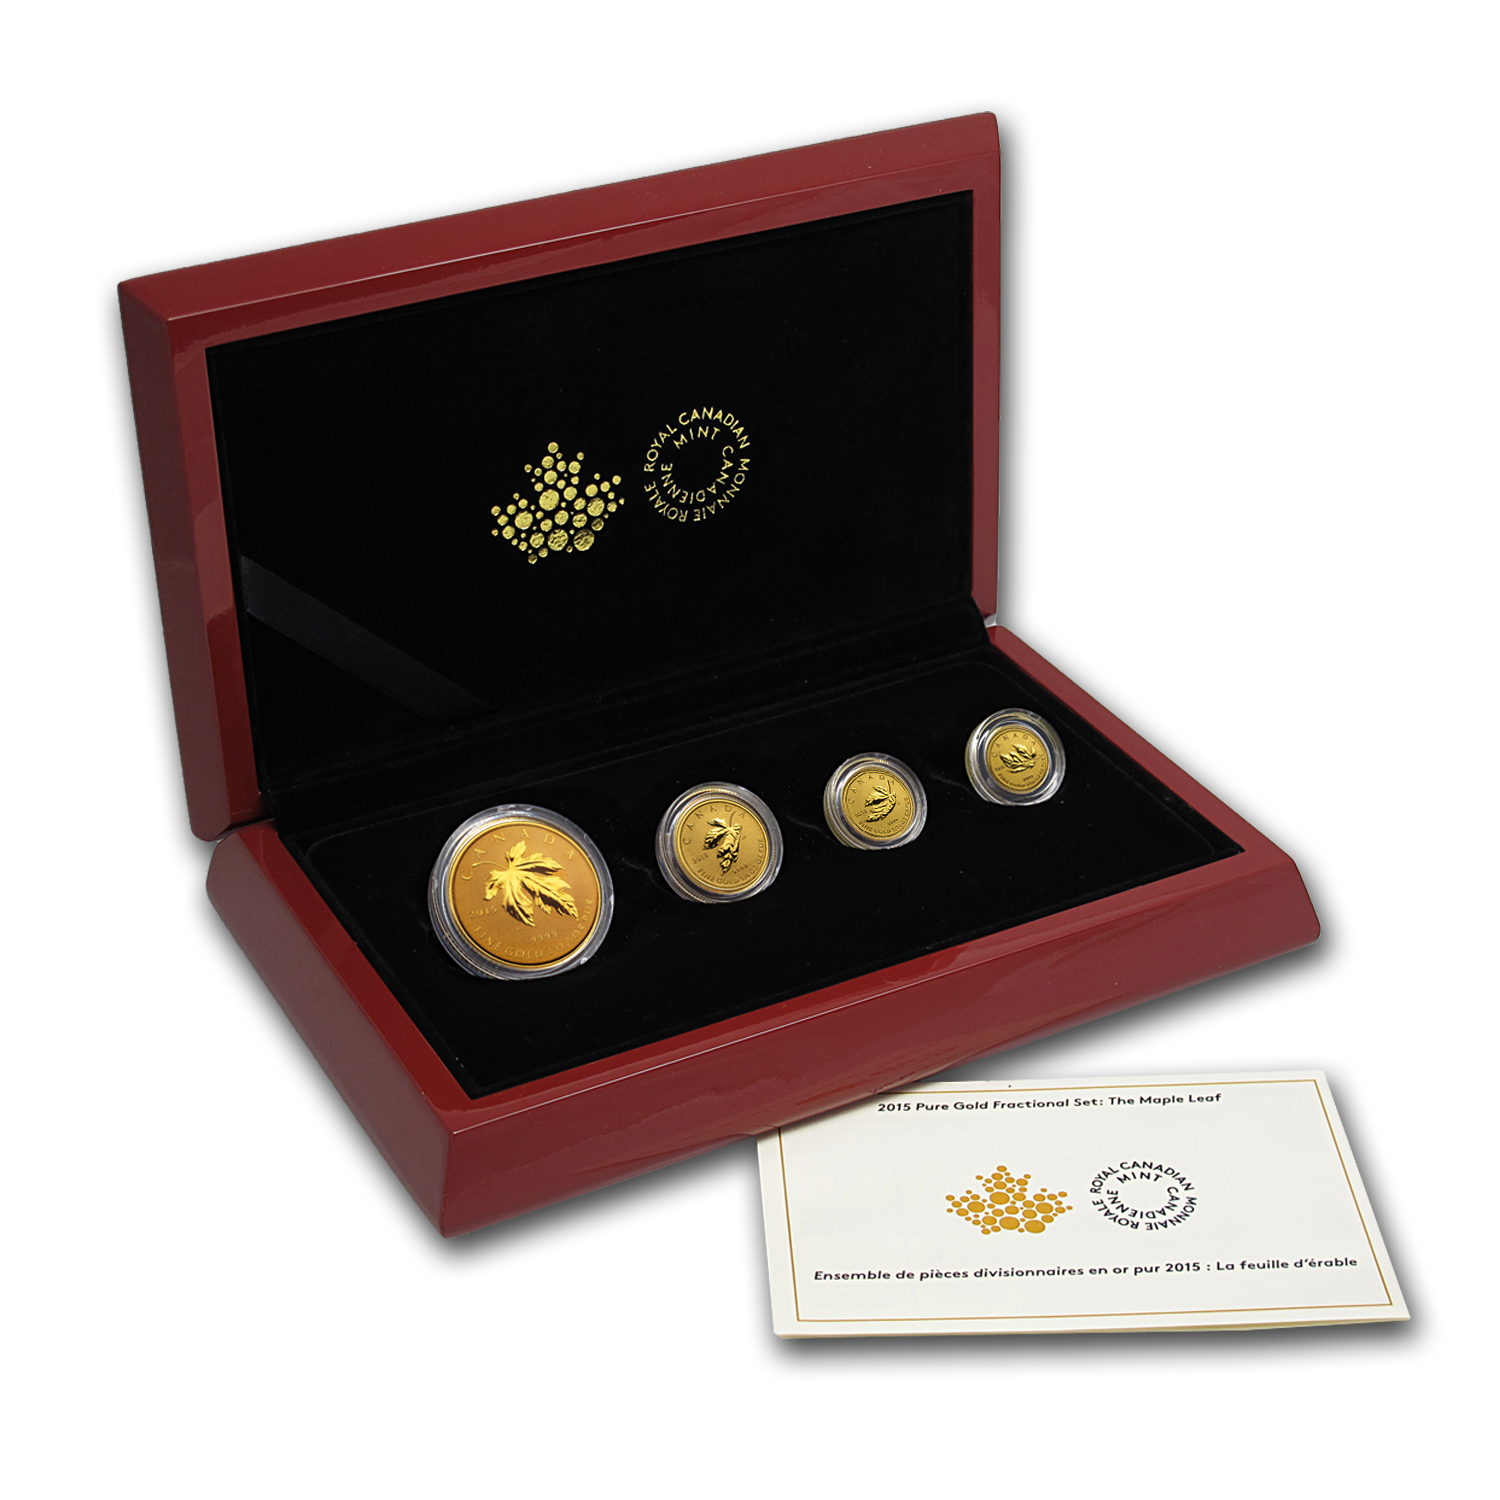 2015 4-Coin Canada Gold  Fractional Maple Leaf Set (1.4 oz)